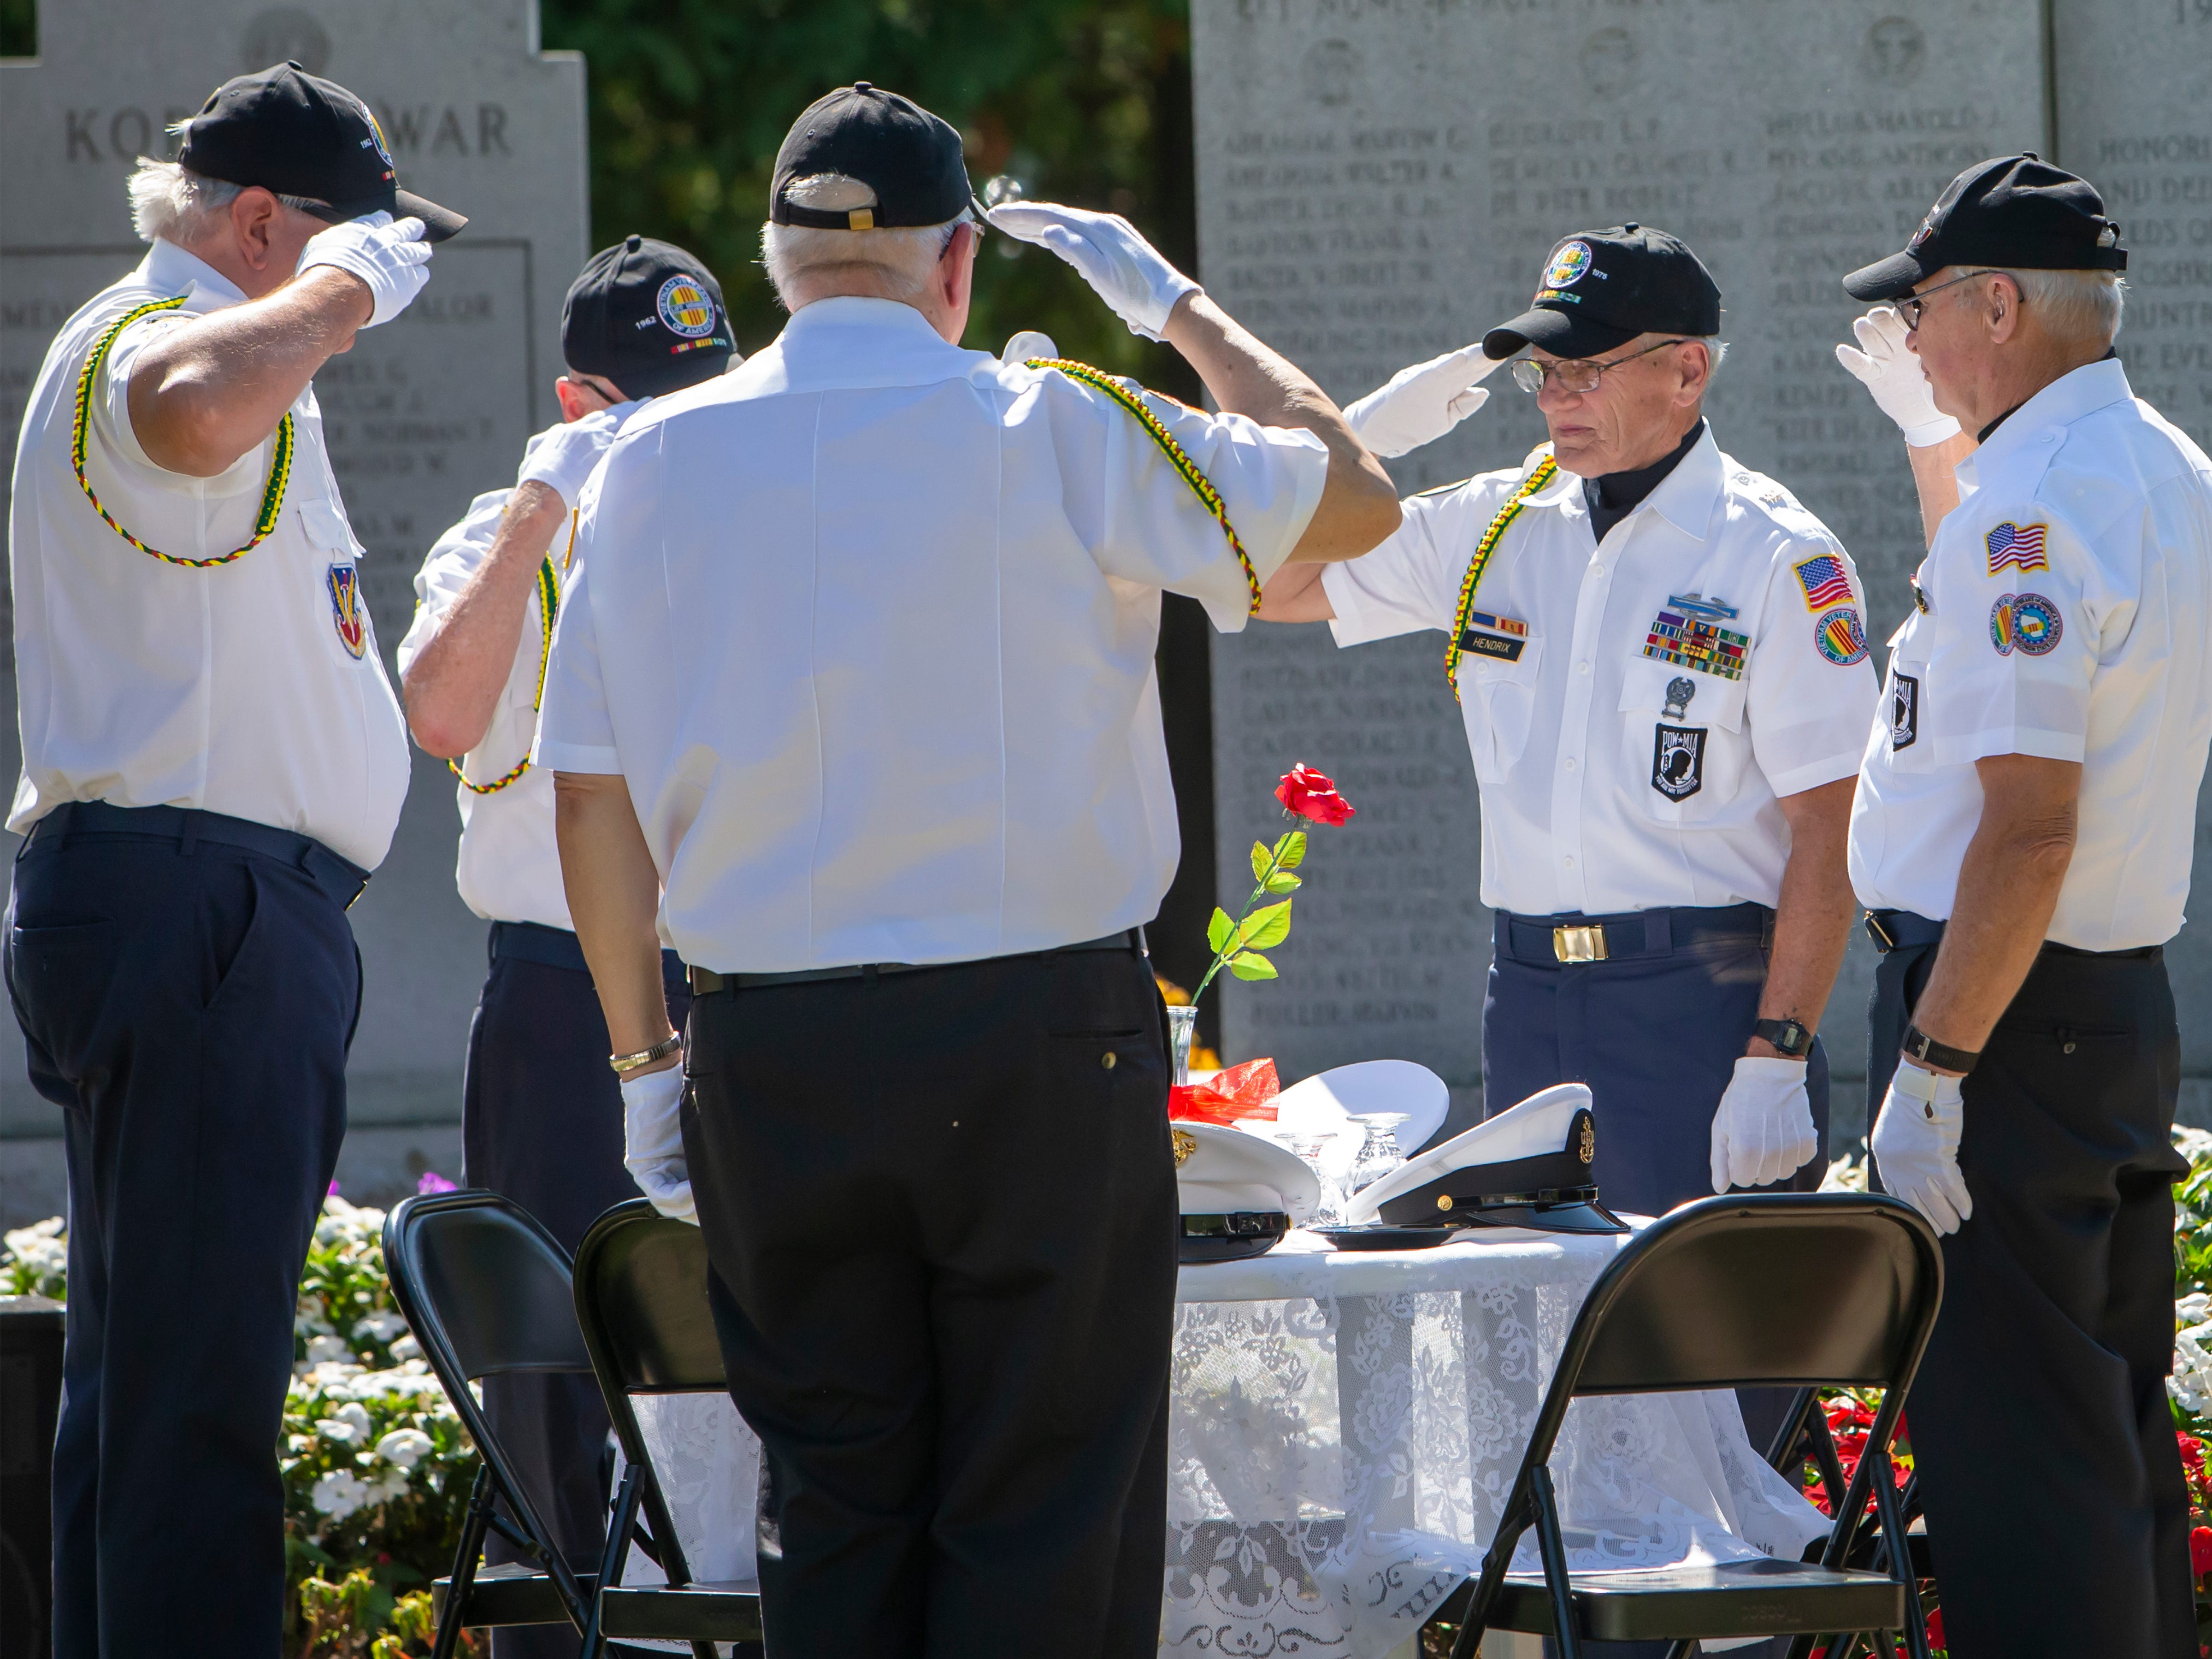 Each branch of the military is represented at the ceremonial table during the annual Annual POW MIA Remembrance Ceremony at South Park Veterans Memorial on Saturday, September 15, 2018.